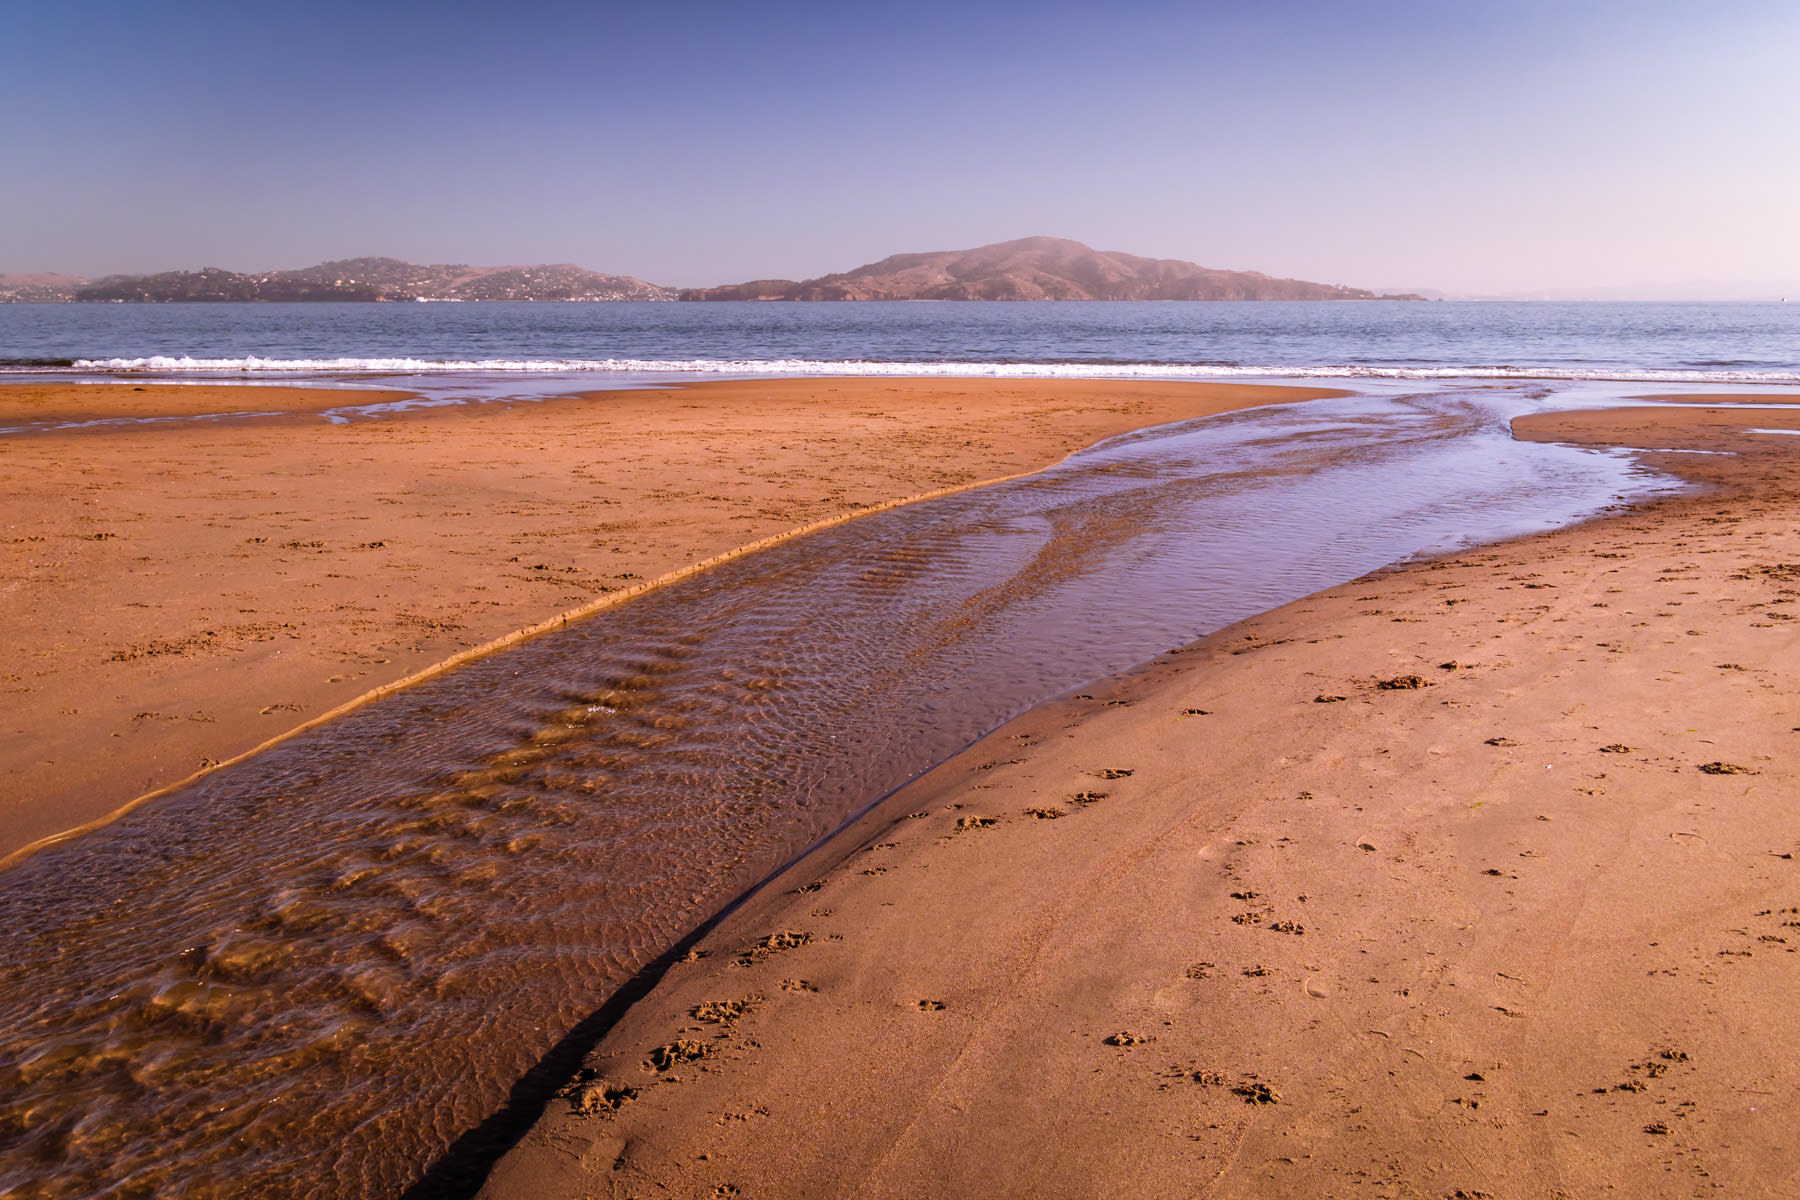 Early-morning waves from San Francisco Bay roll onto the shore at Crissy Field.